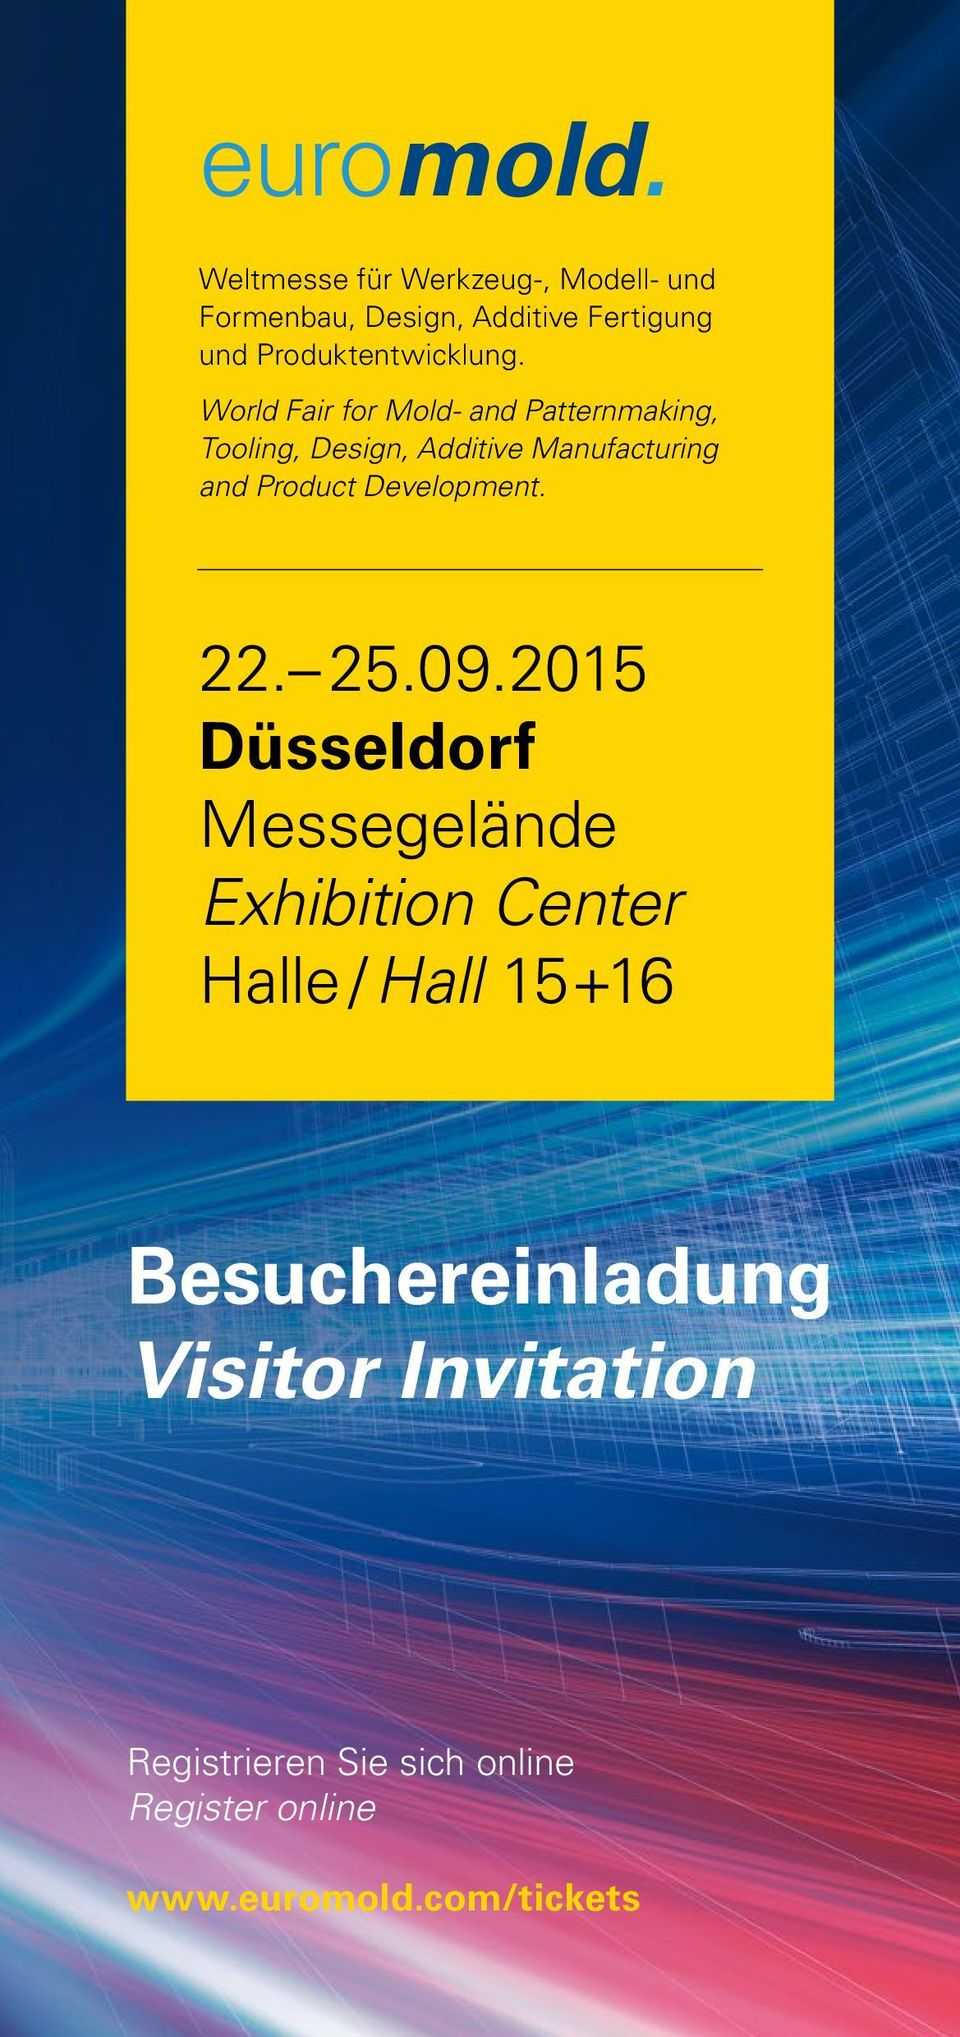 World Fair for Mold- and Patternmaking, Tooling, Design, Additive Manufacturing and Product